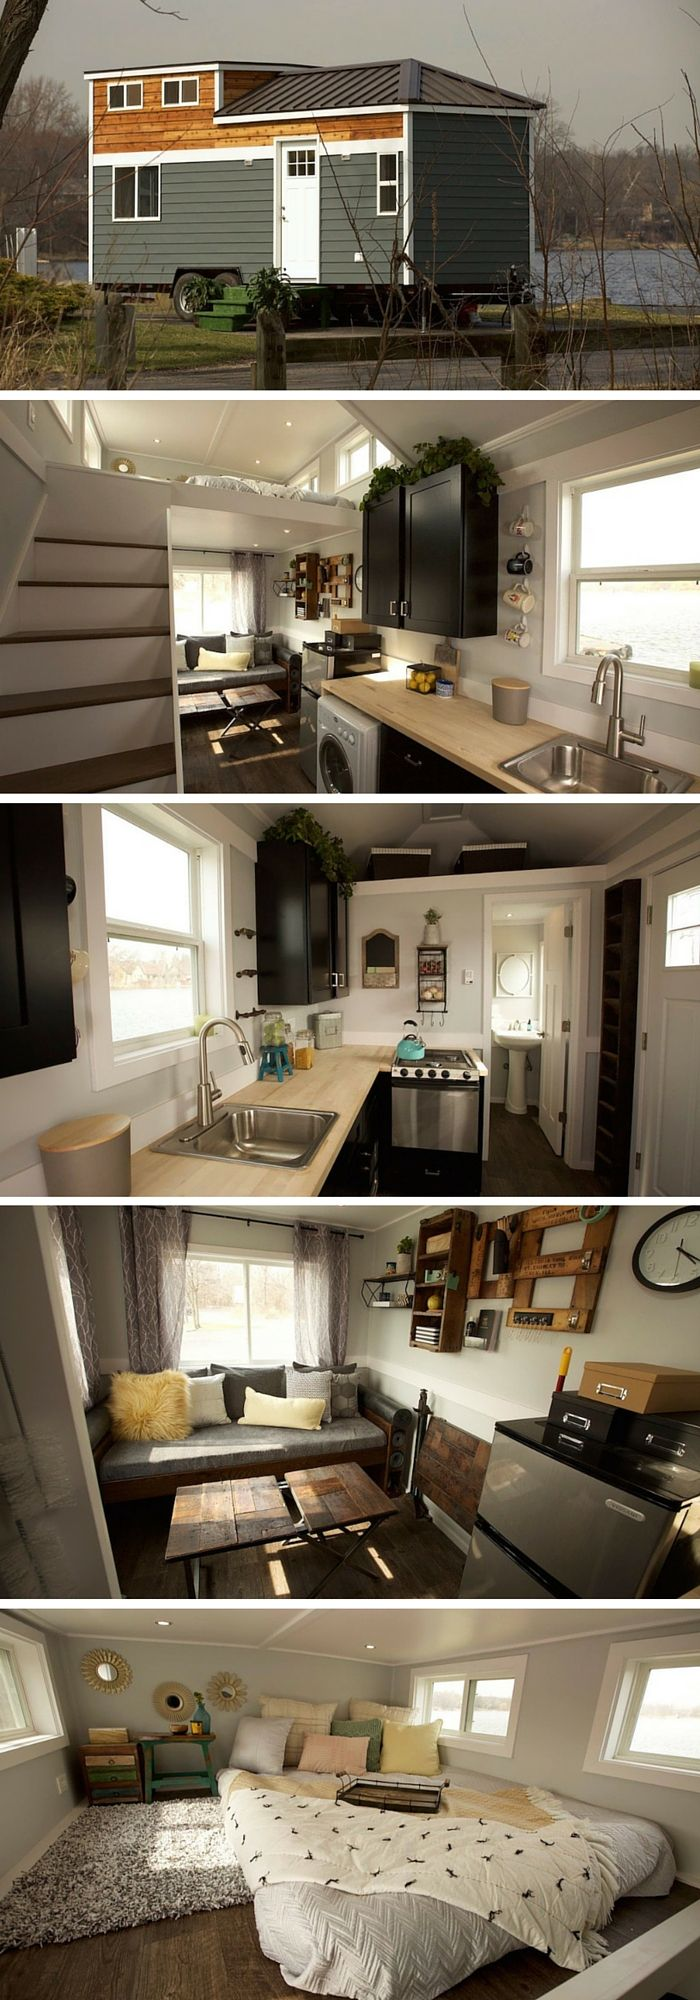 Tinyhouse Smallhome Tinyhome Tinyhouseplans The Notarosa Tiny House Measures A Total